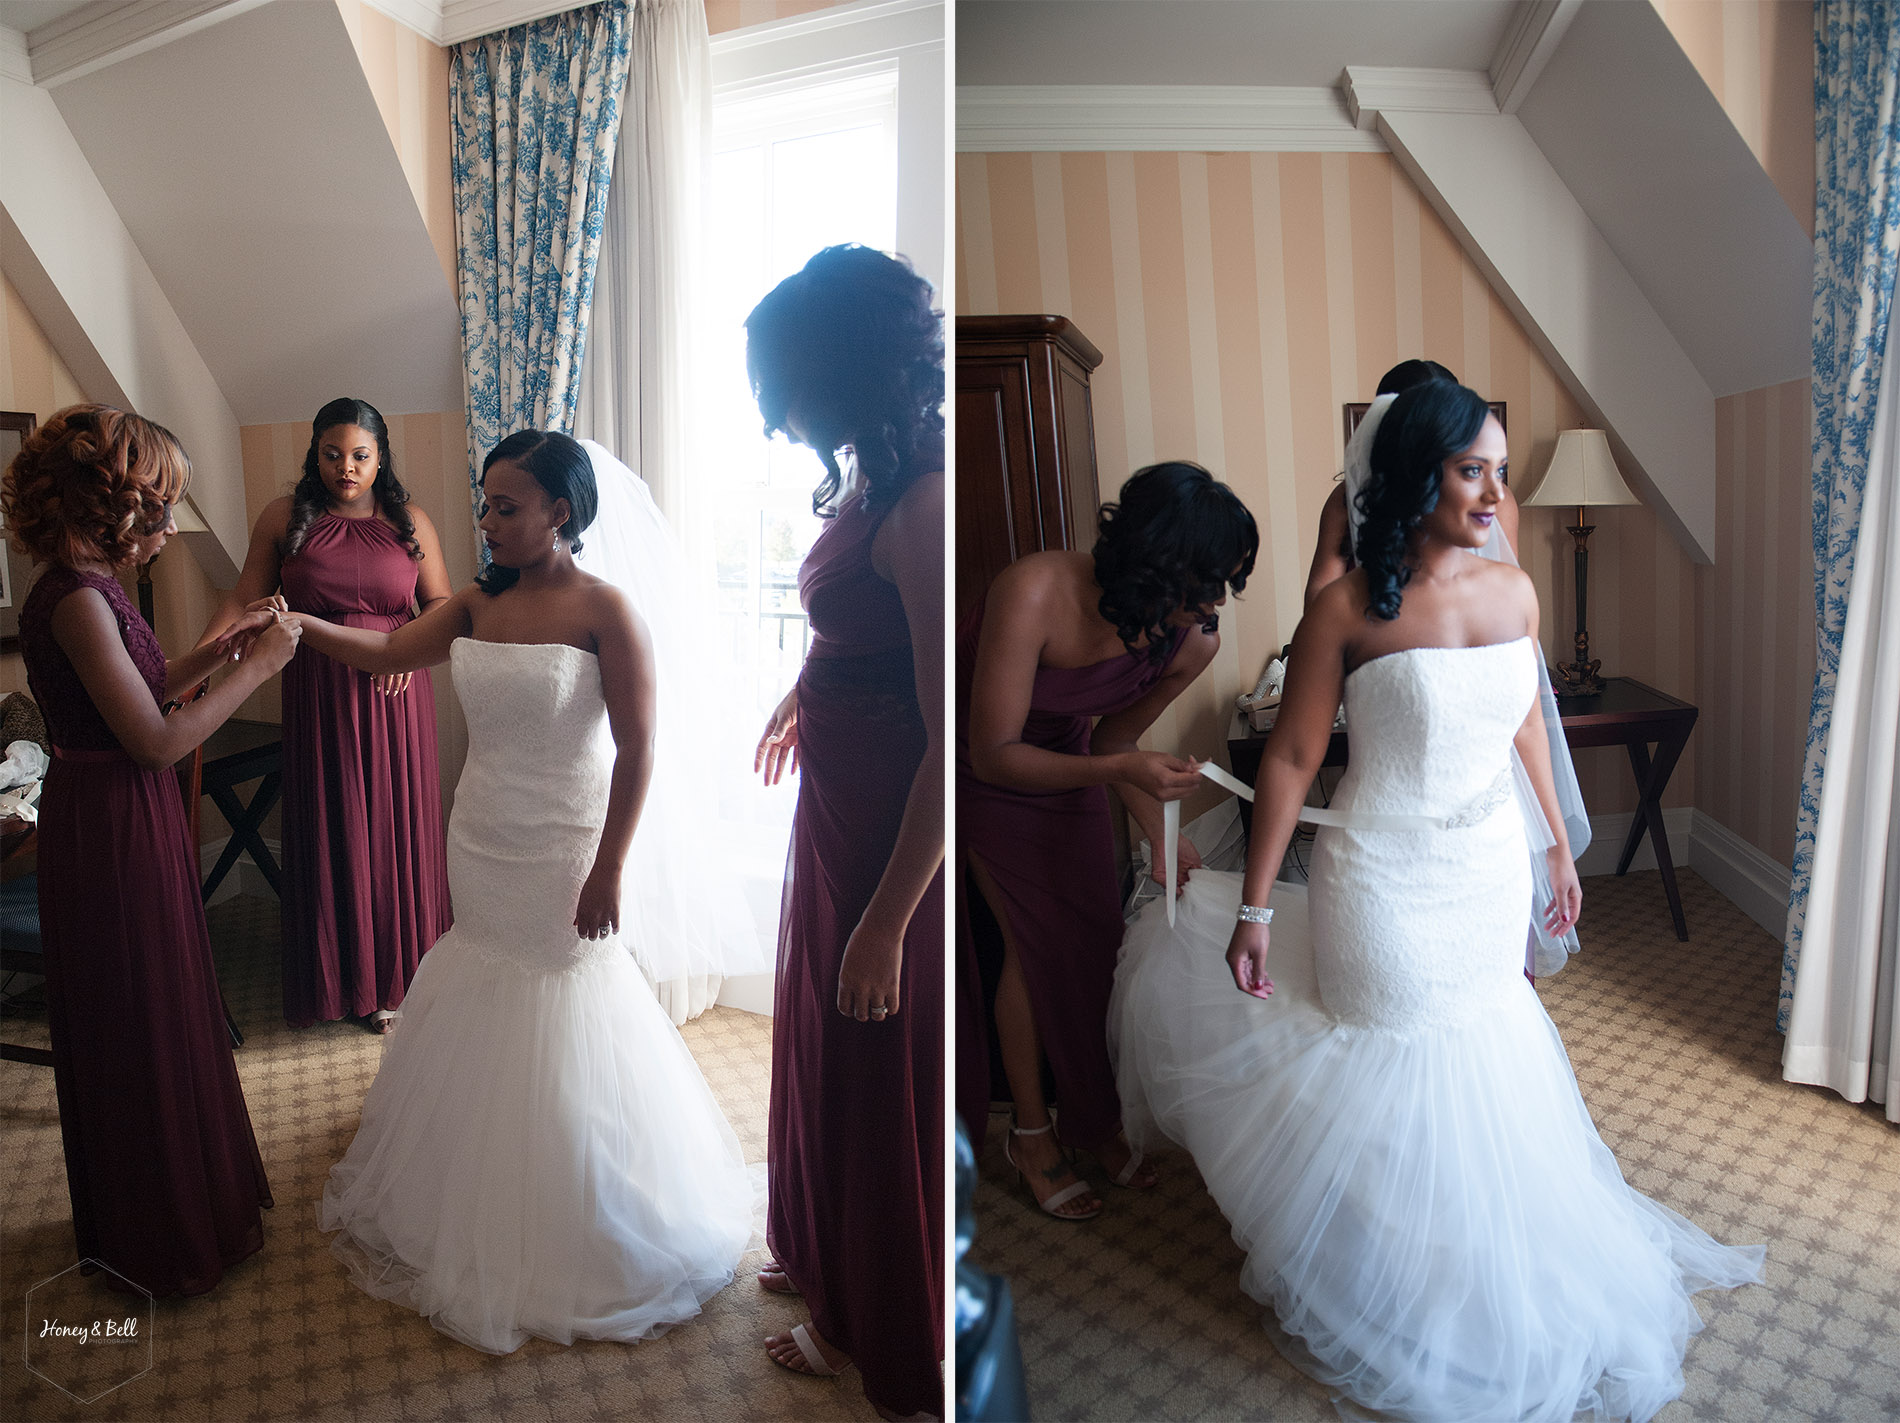 fields-wedding-rochester-michigan-detroit-wedding-photographer-royal-park-hotel-bride-getting-ready-09